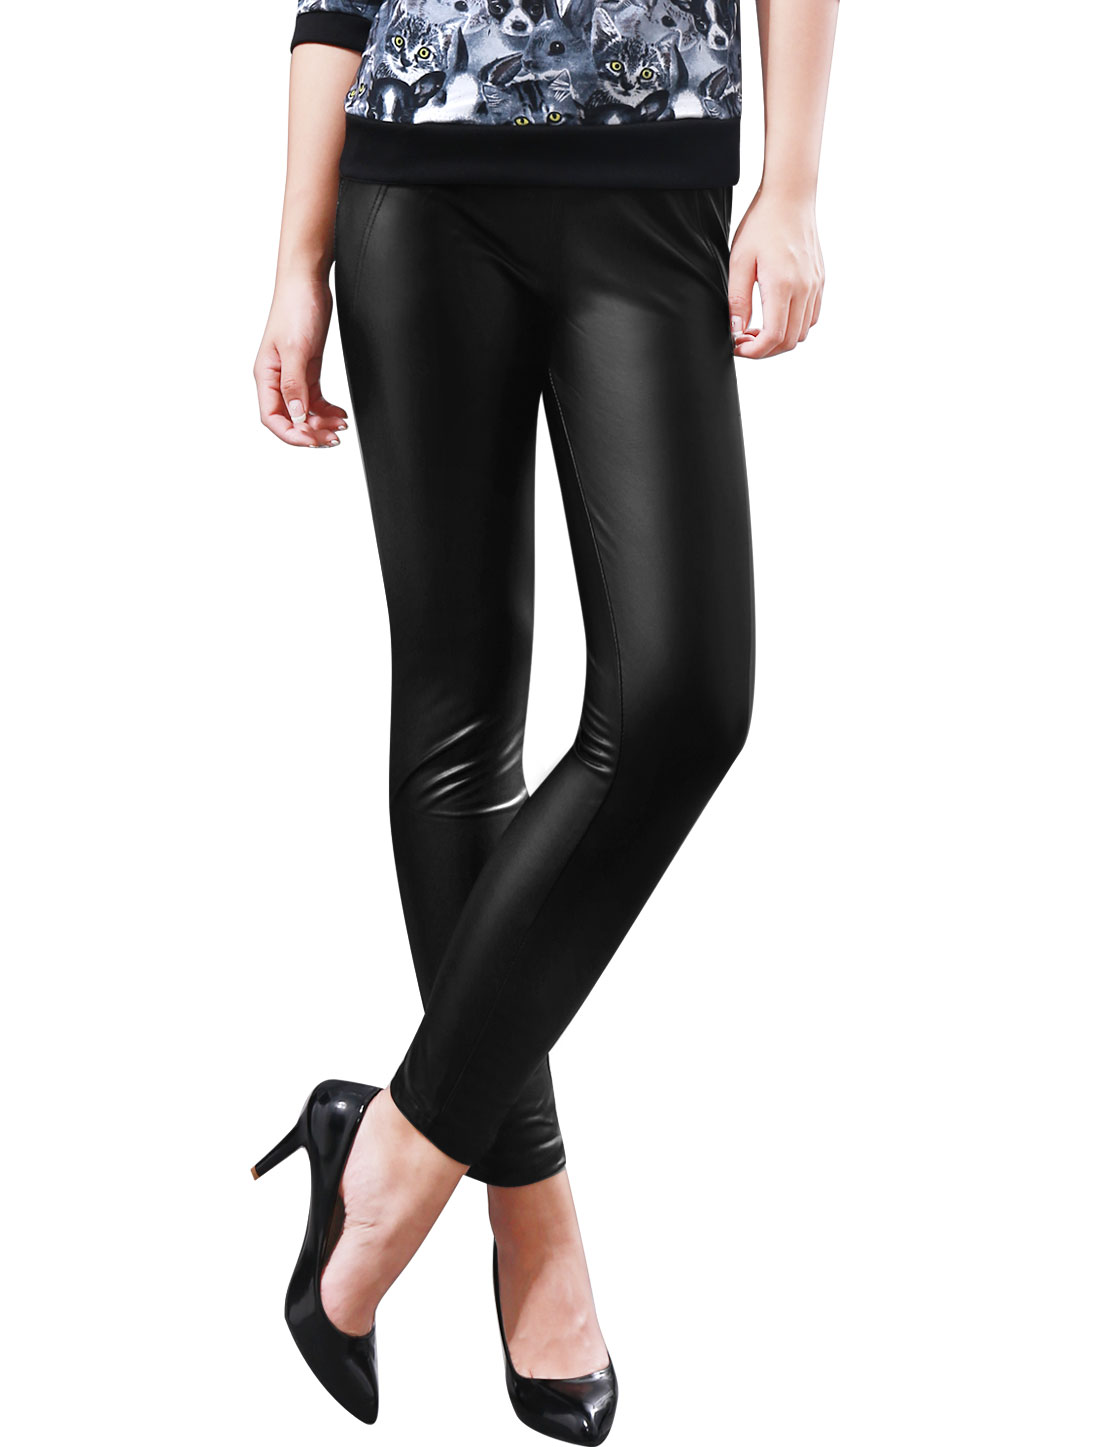 Women Pockets Back Elastic Waist Stylish Imitation Leather Pants Black M